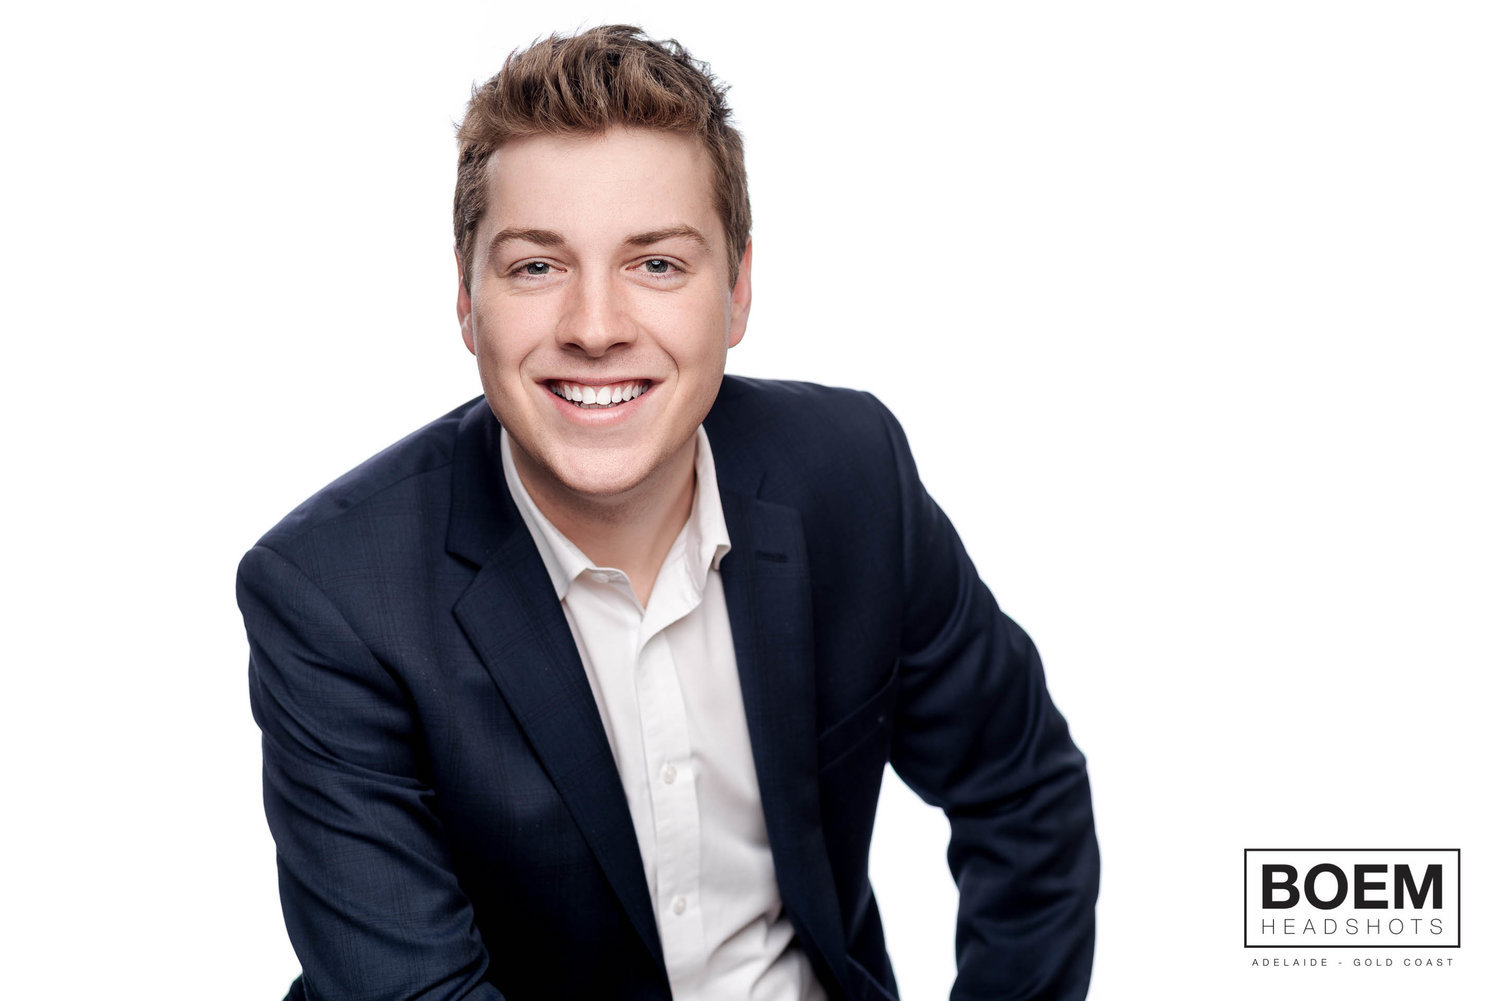 brandon-executive-headshots-adelaide-1.jpg